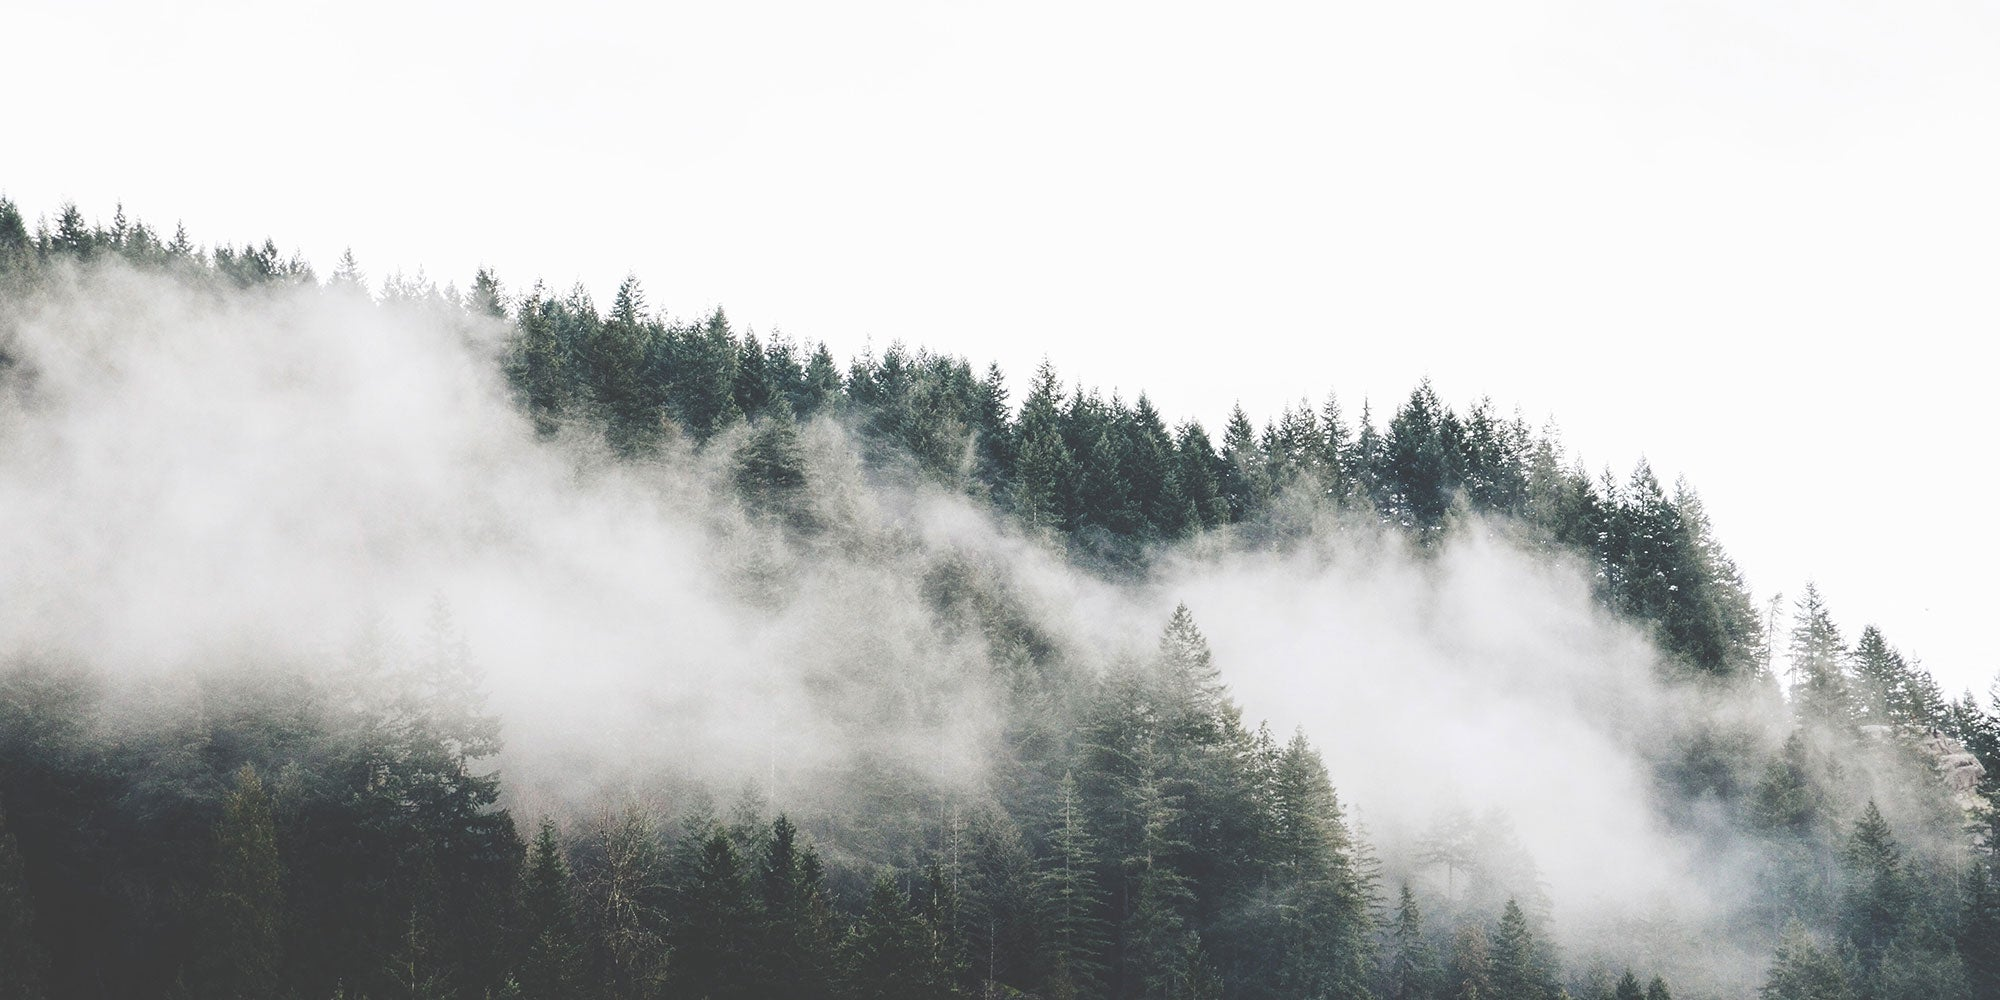 Moody clouds and trees in a Pacific Northwest forest.